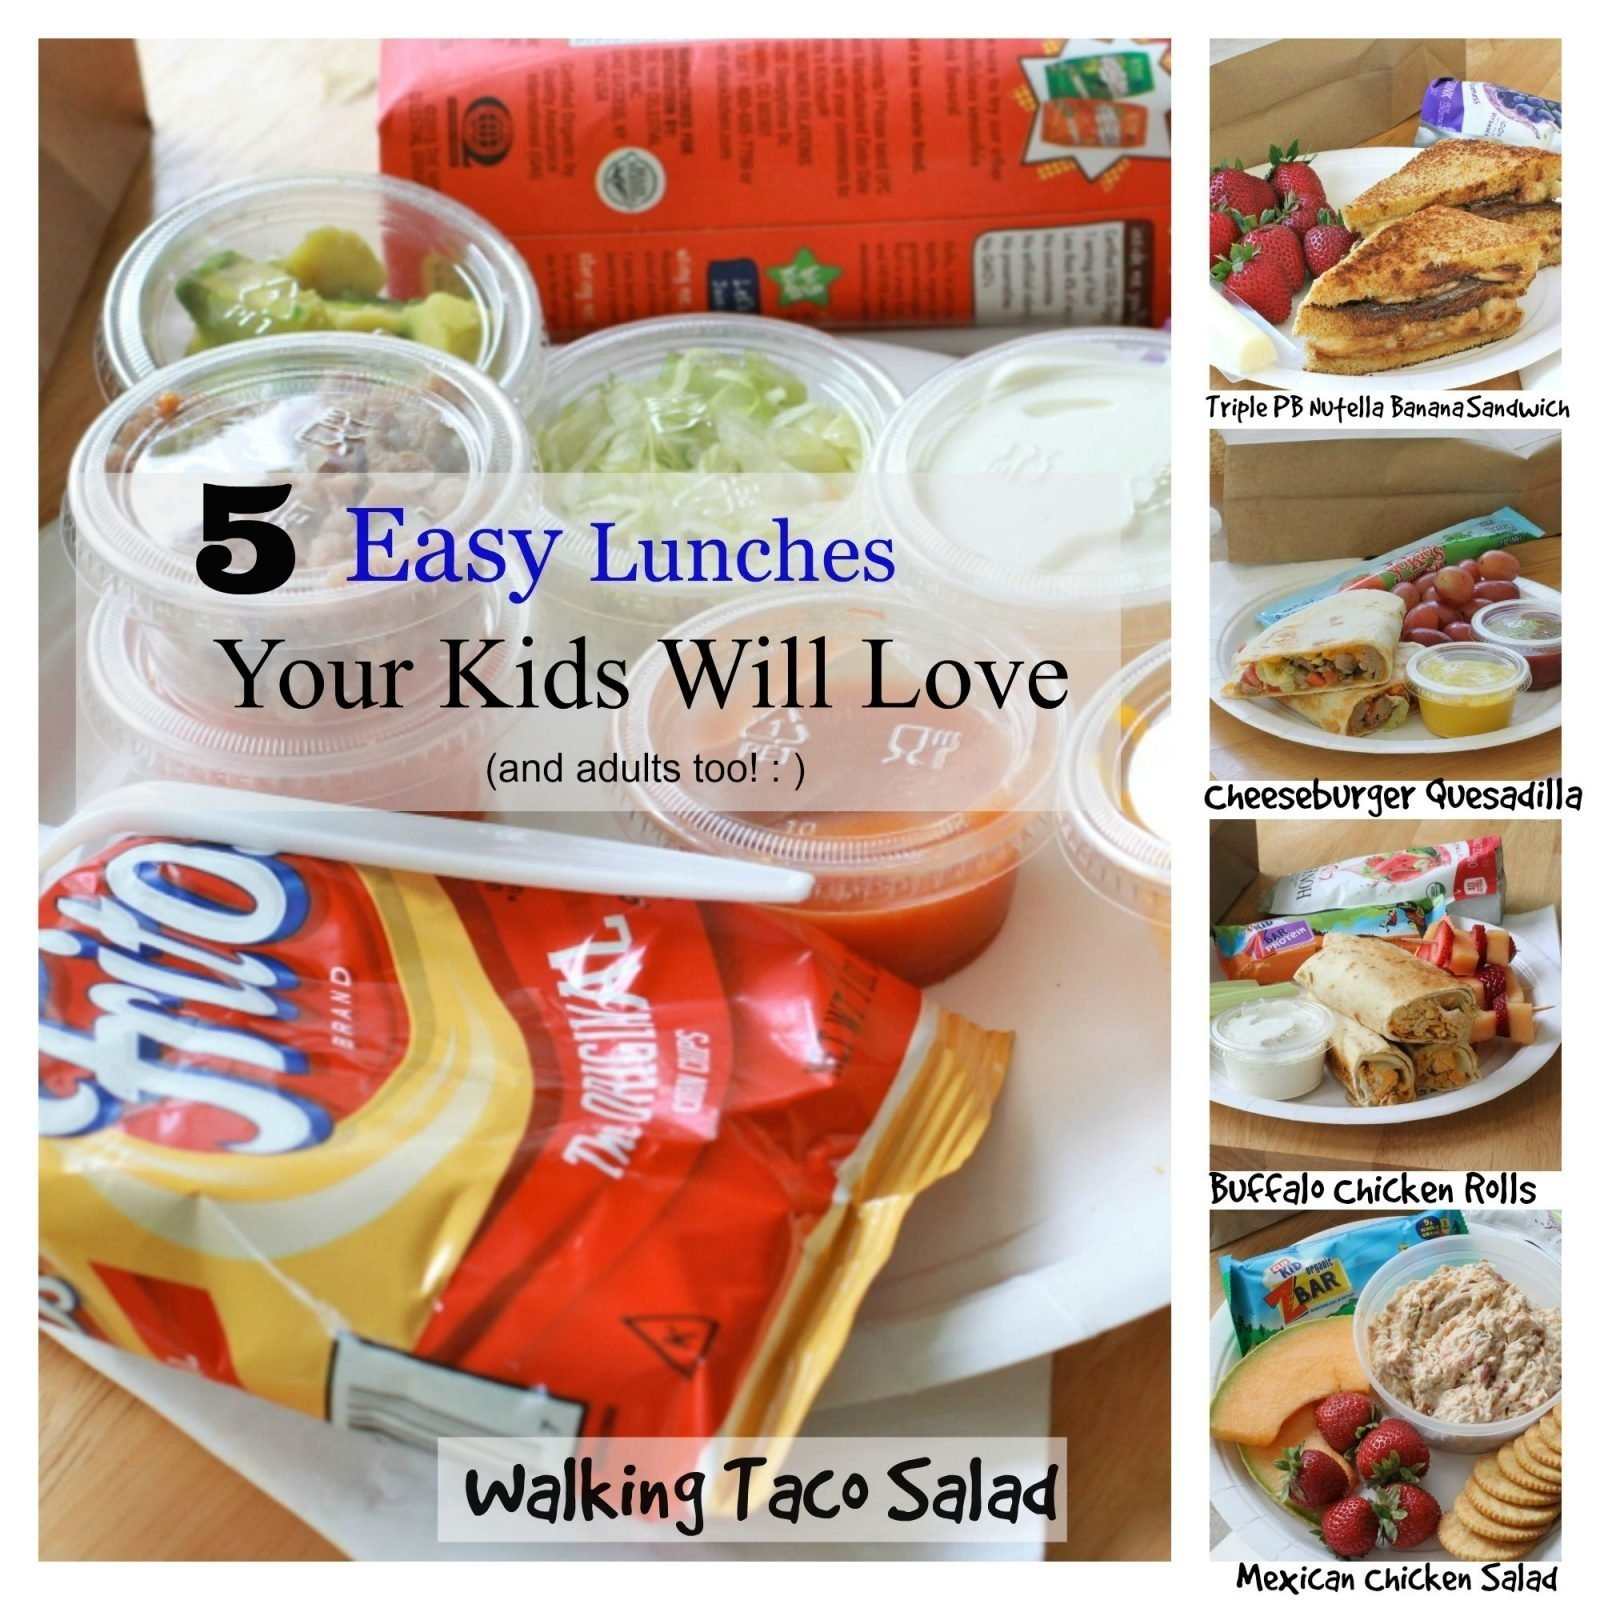 10 Stunning School Lunch Ideas For Kids easy school lunch idea recipes divas can cook 8 2020